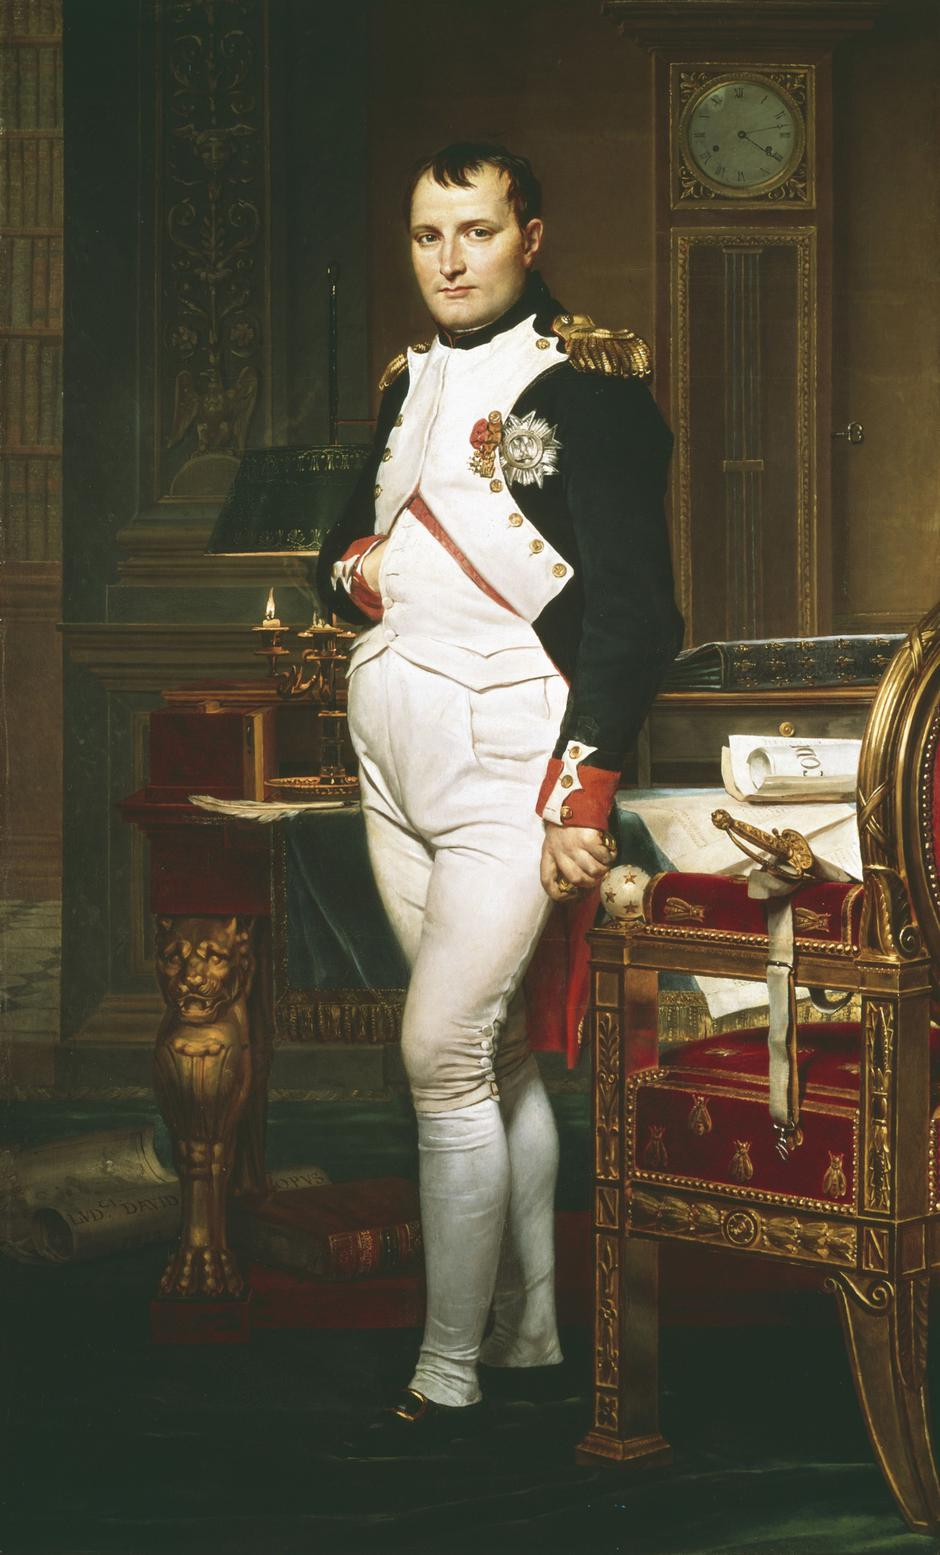 Portrait of Napoleon by David Jacques Louis | Autor: Photos.com